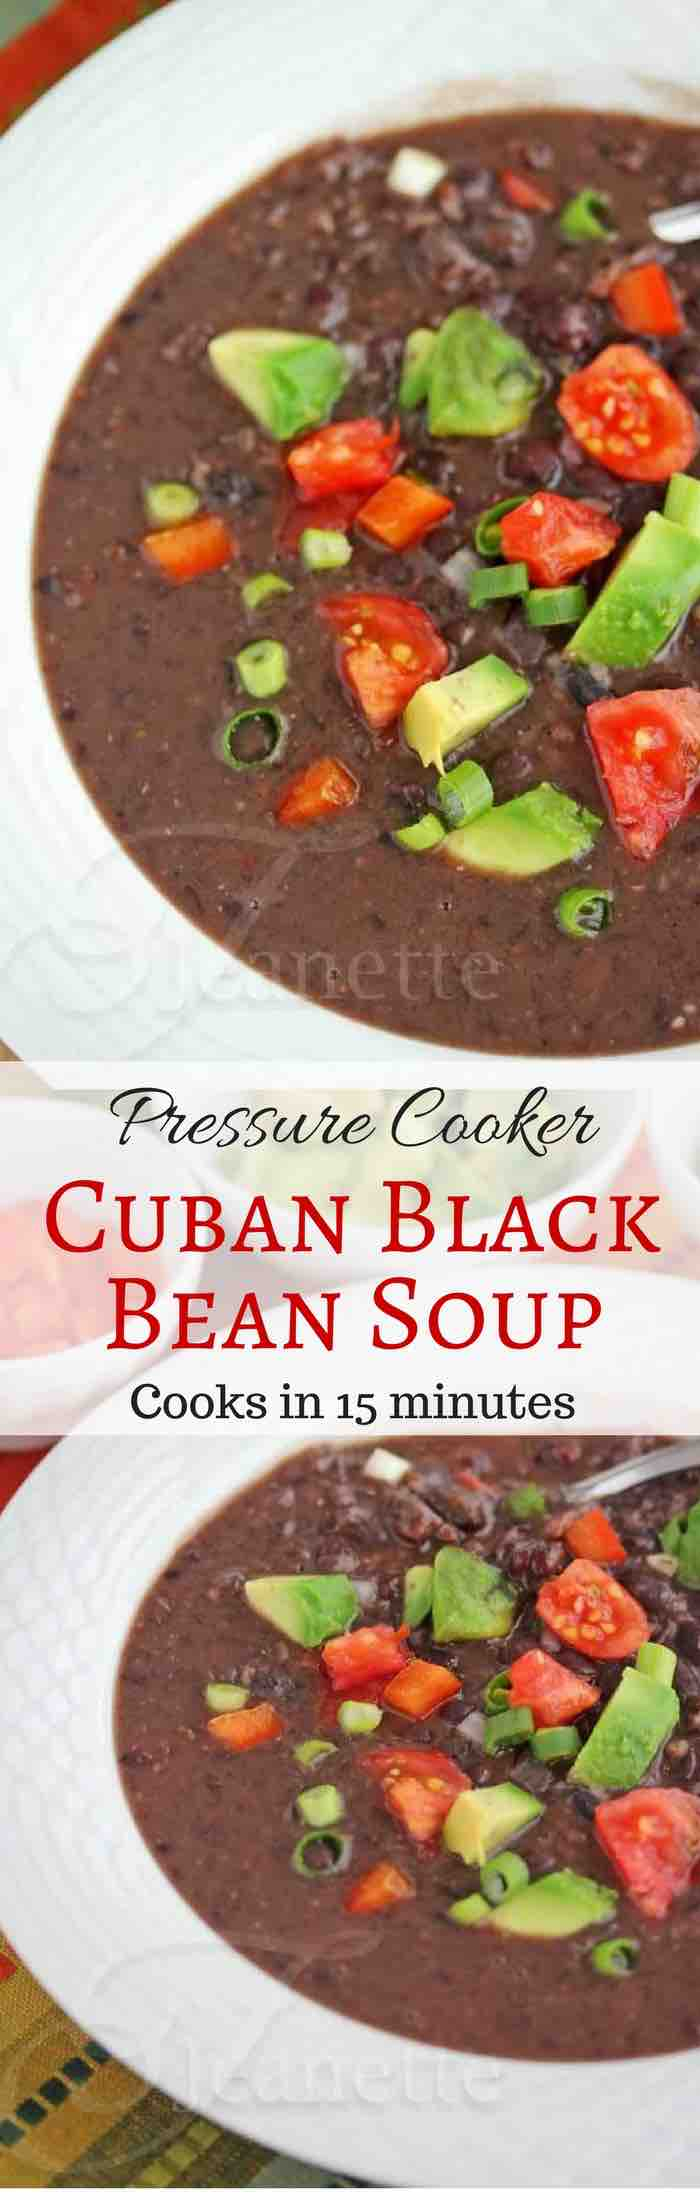 Pressure Cooker/Instant Pot Cuban Black Bean Soup - cooks in just 15 minutes - warm up with a bowl of this hearty healthy soup